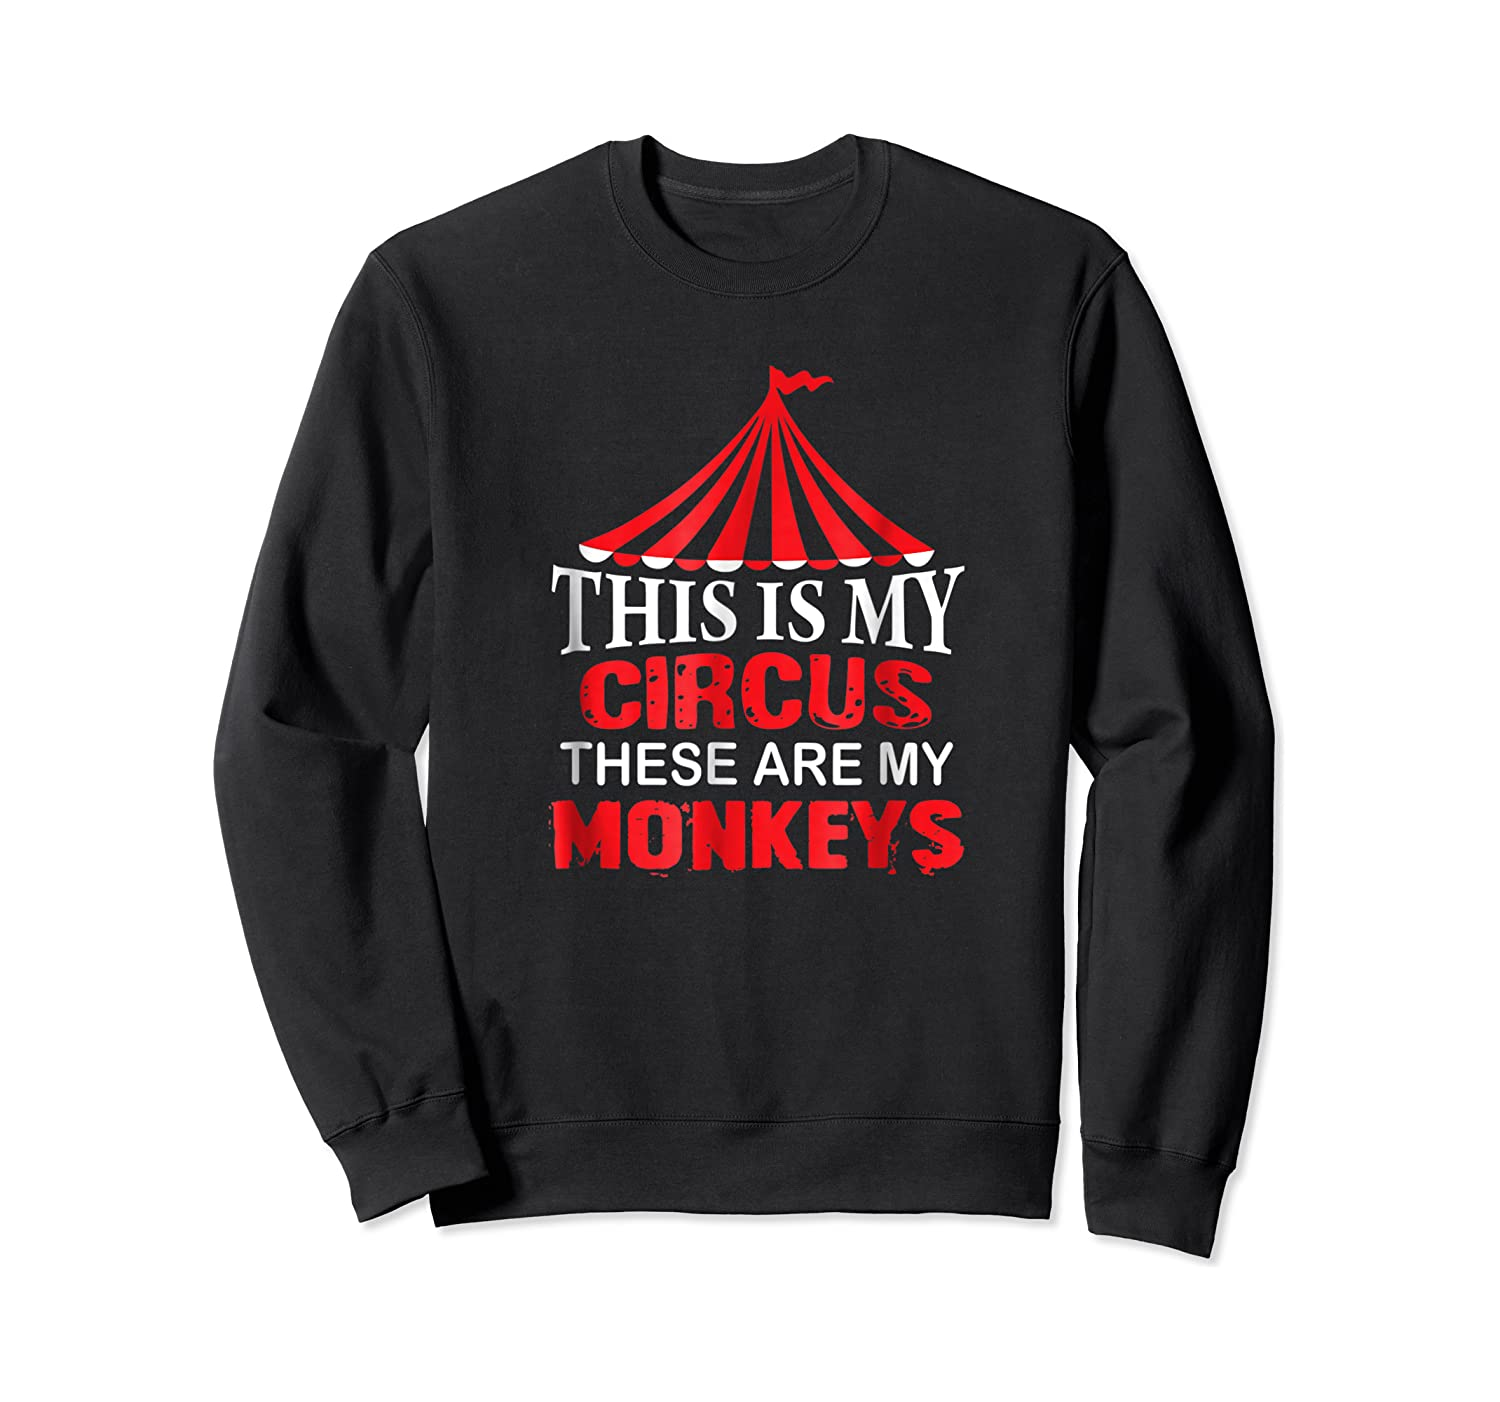 This Is My Circus These Are My Monkeys T Shirt, Family Fun Crewneck Sweater